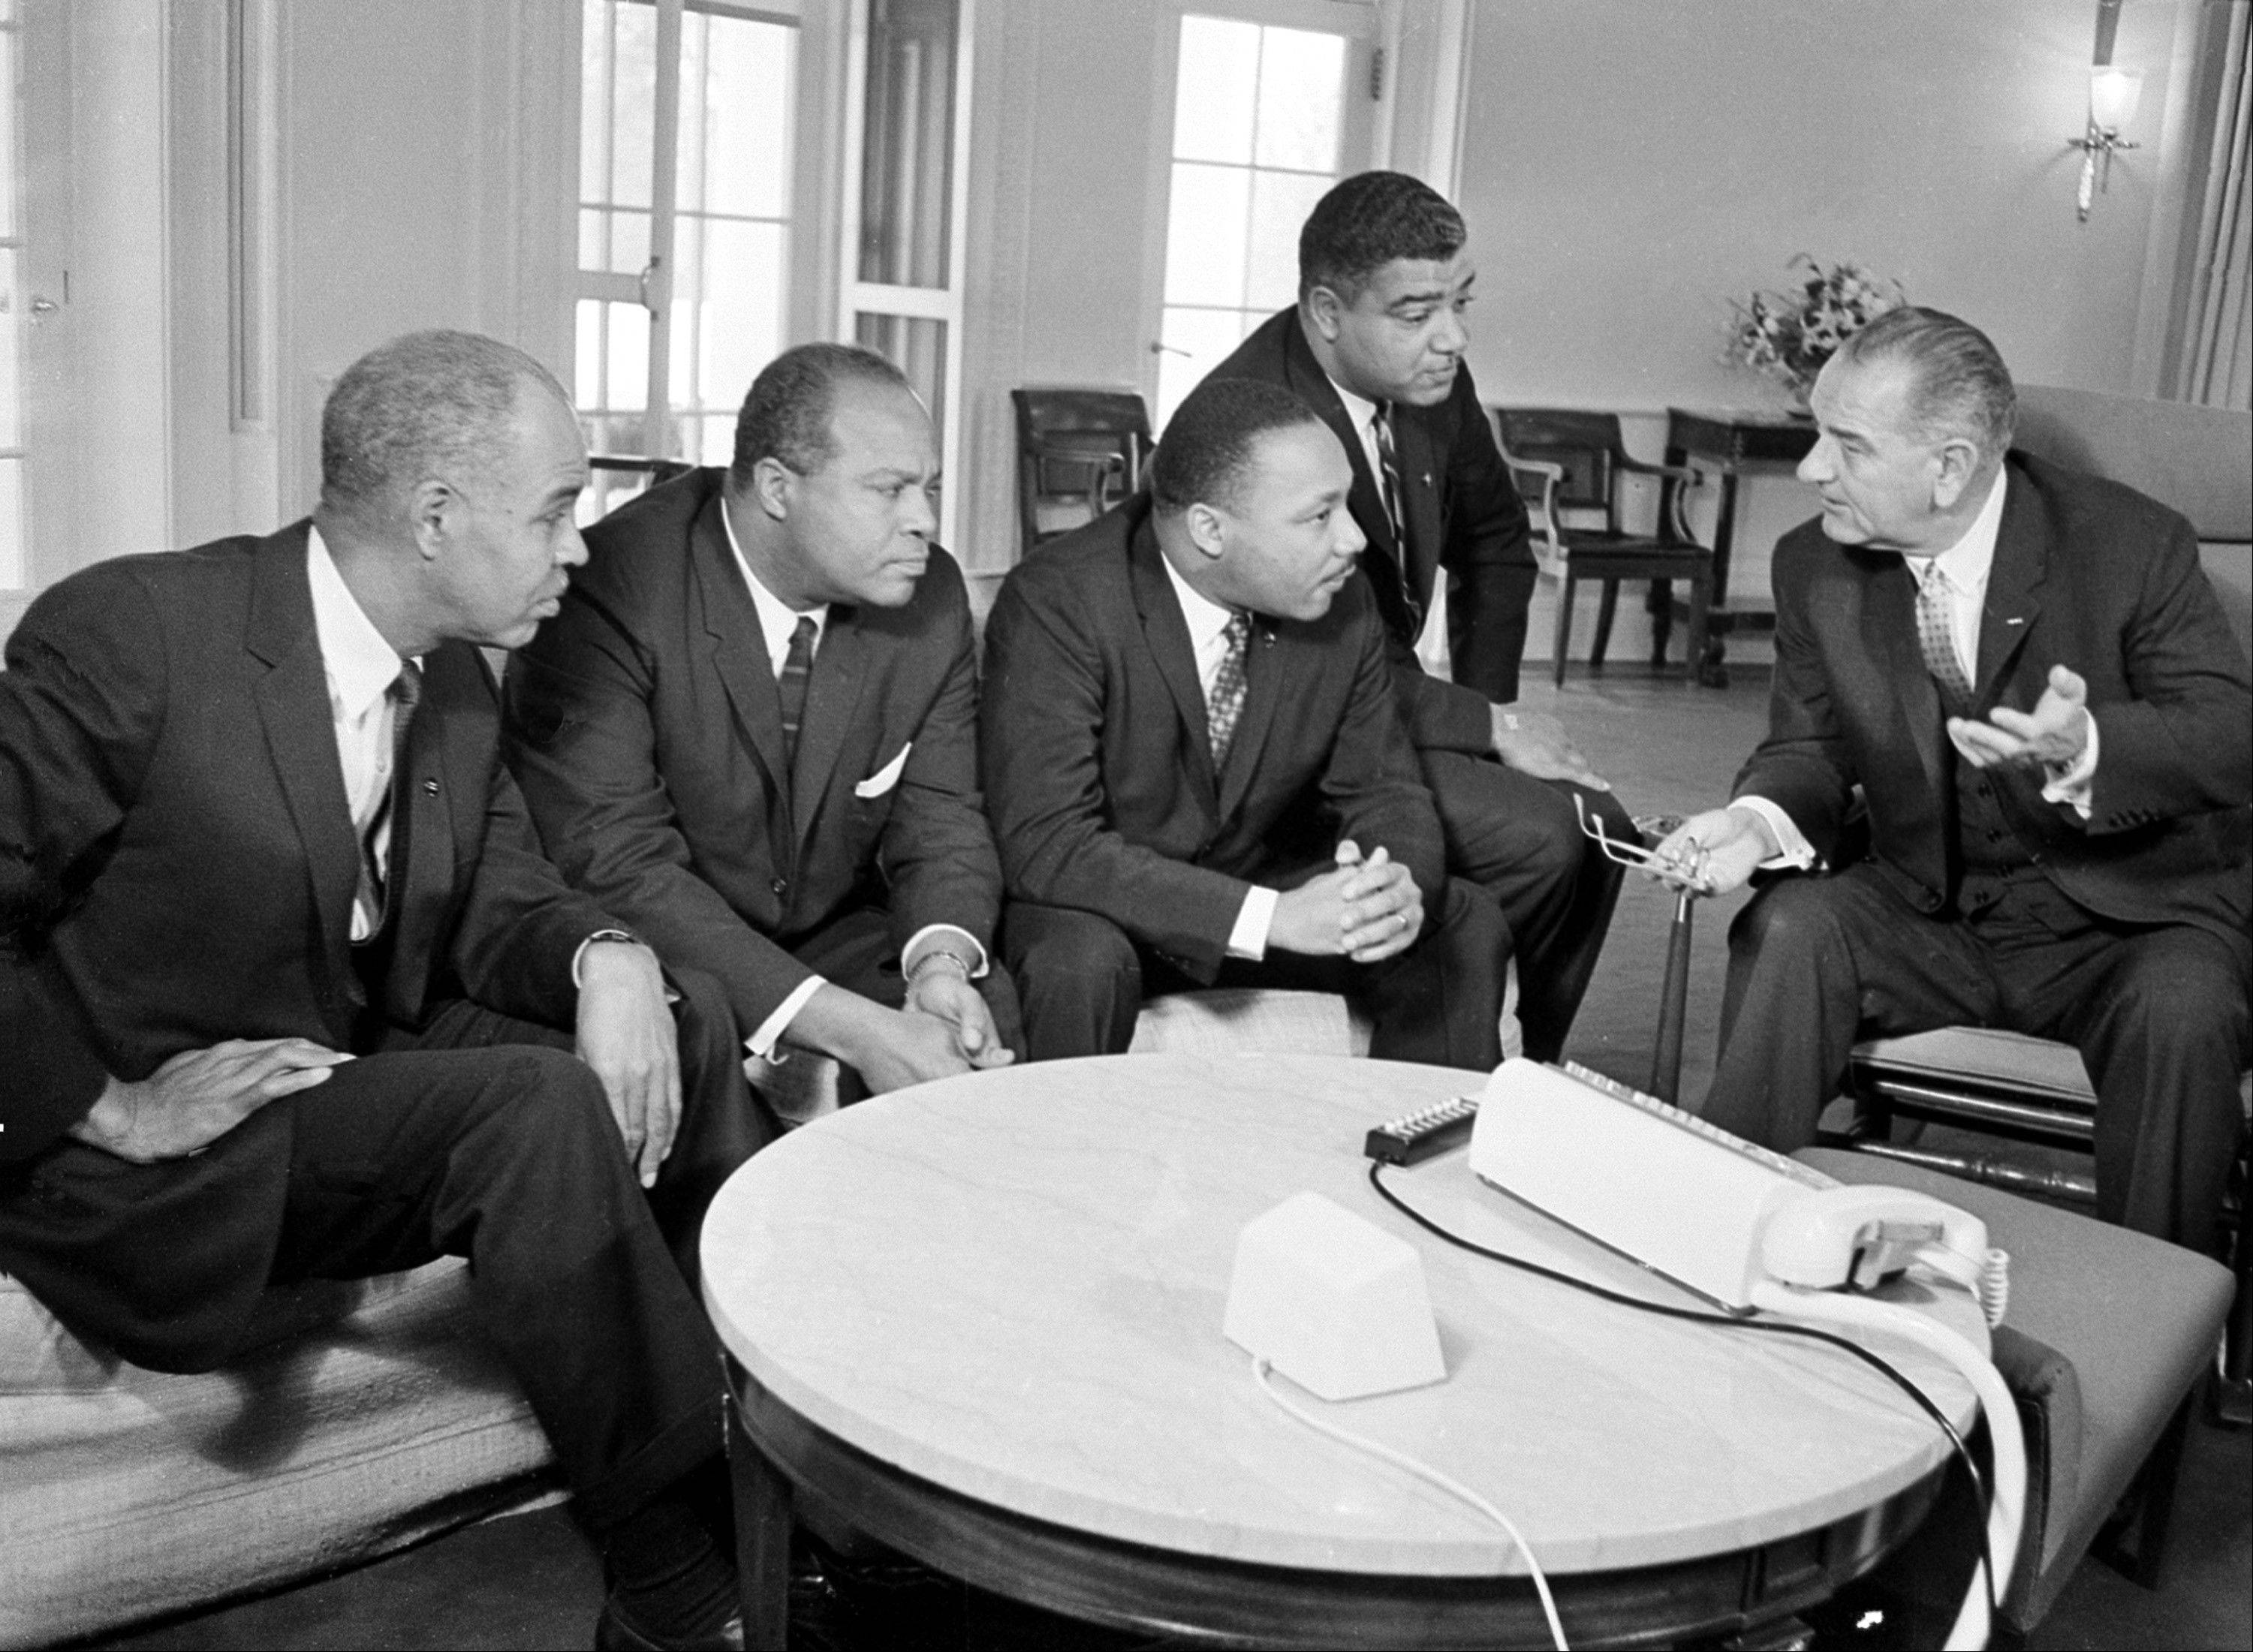 In this Jan. 18, 1964 file photo, U.S. President Lyndon B. Johnson, right, talks with civil rights leaders in his White House office in Washington, D.C. The black leaders, from left, are, Roy Wilkins, executive secretary of the National Association for the Advancement of Colored People (NAACP); James Farmer, national director of the Committee on Racial Equality; Dr. Martin Luther King Jr., head of the Southern Christian Leadership Conference; and Whitney Young, executive director of the Urban League.